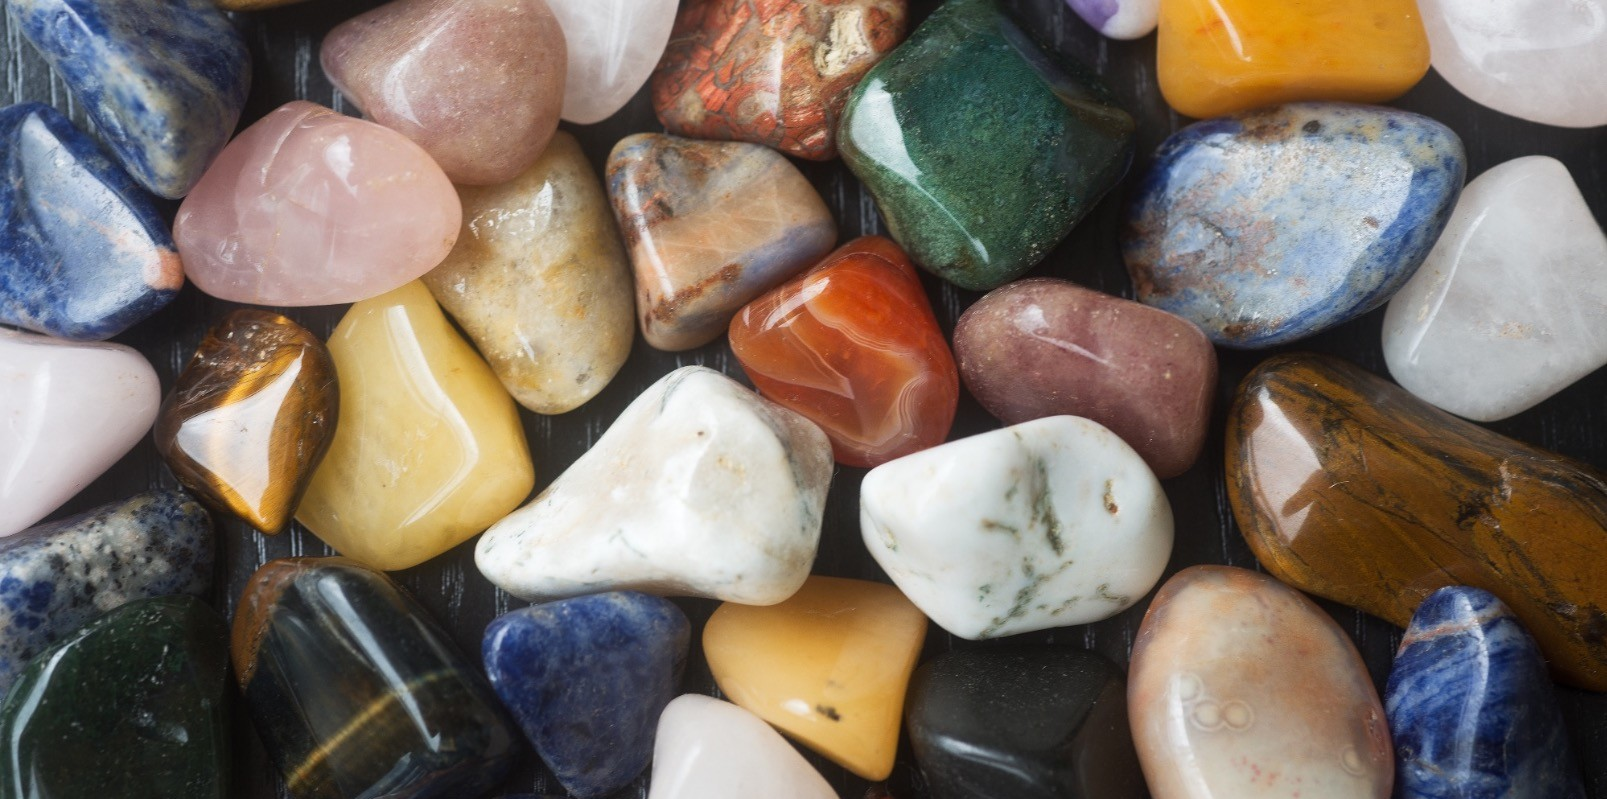 Growing my collection of healing stones.